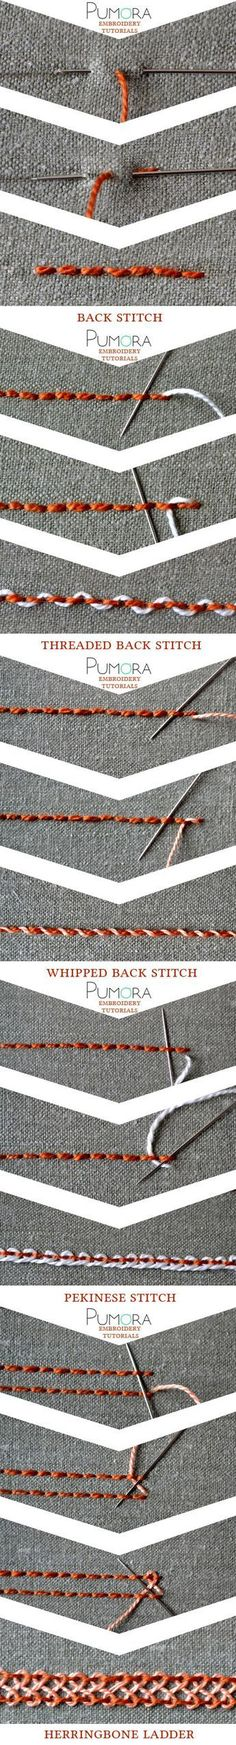 embroidery tutorials: backstitch with variations bordado, ricamo, broderie…